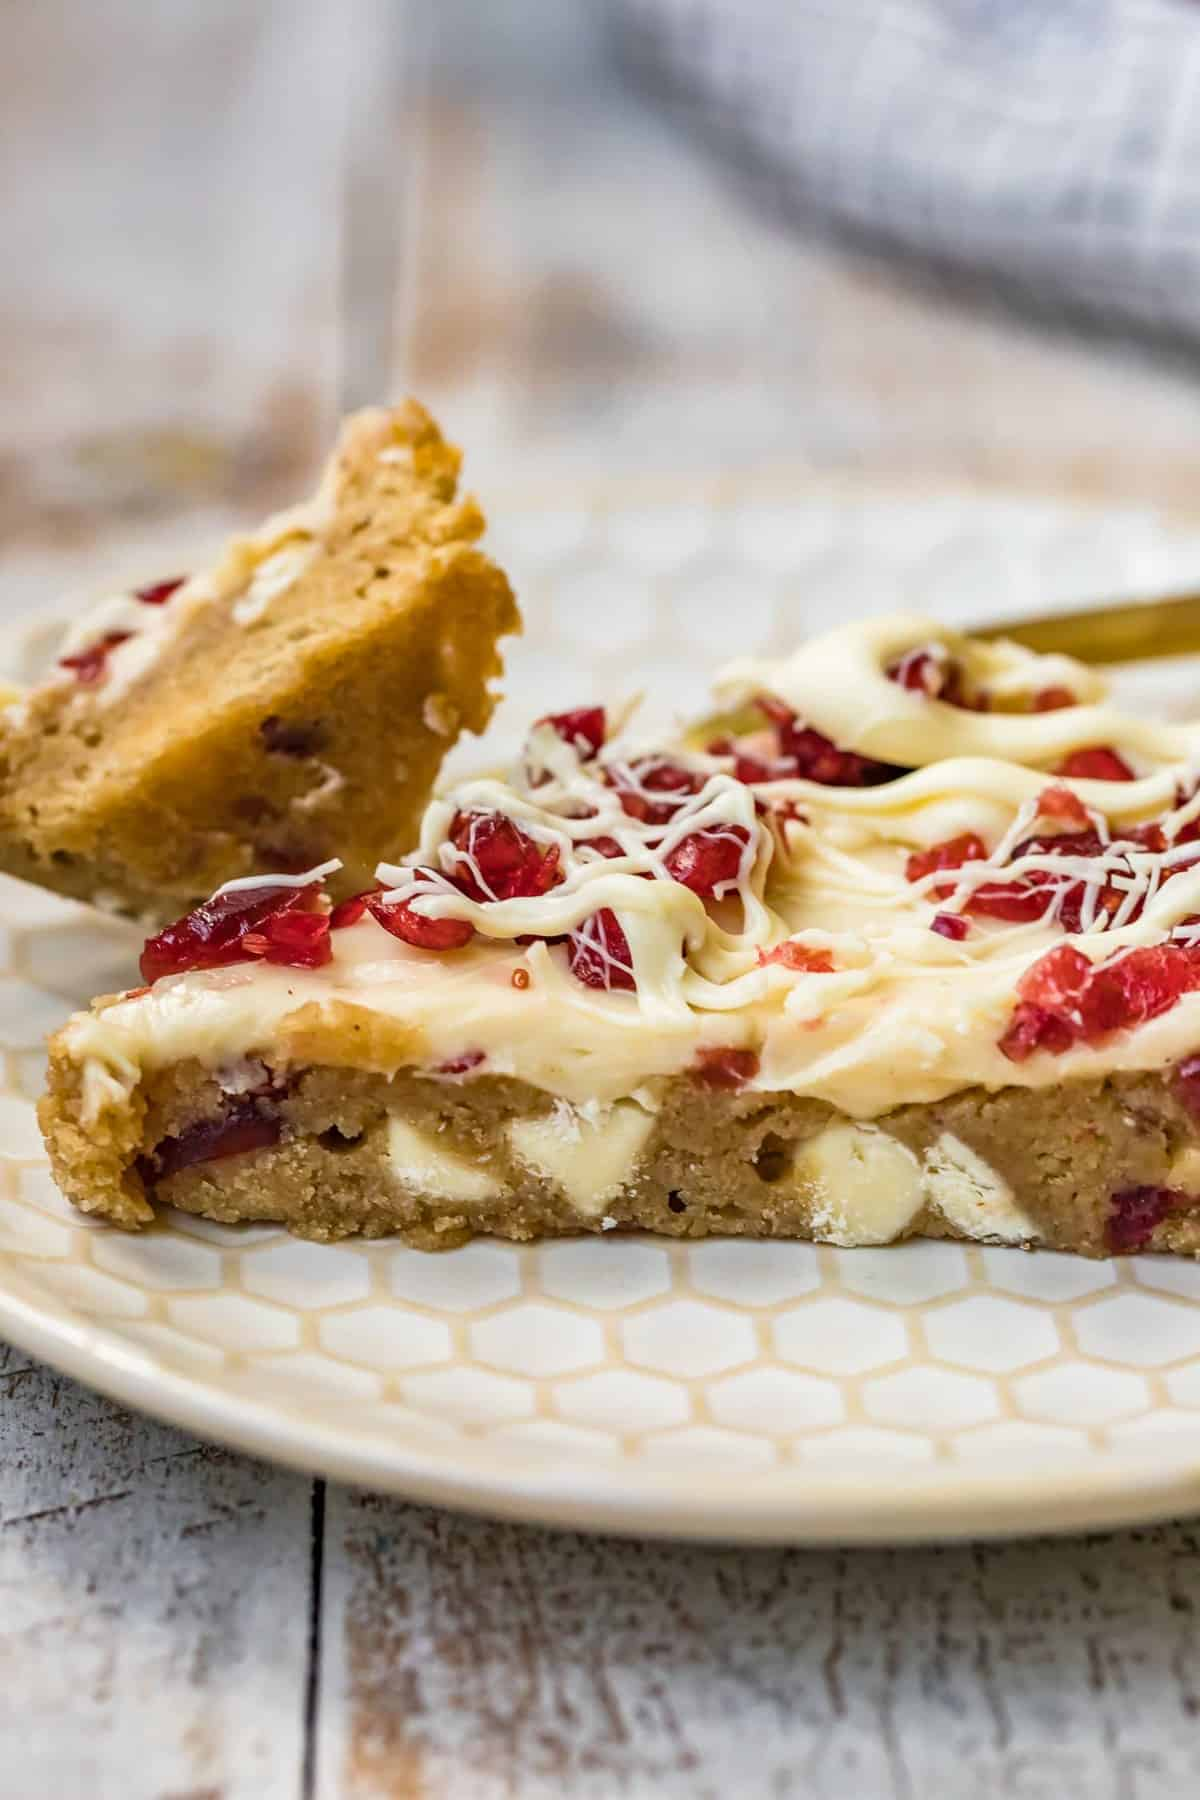 details showing cranberry bliss bars on a plate